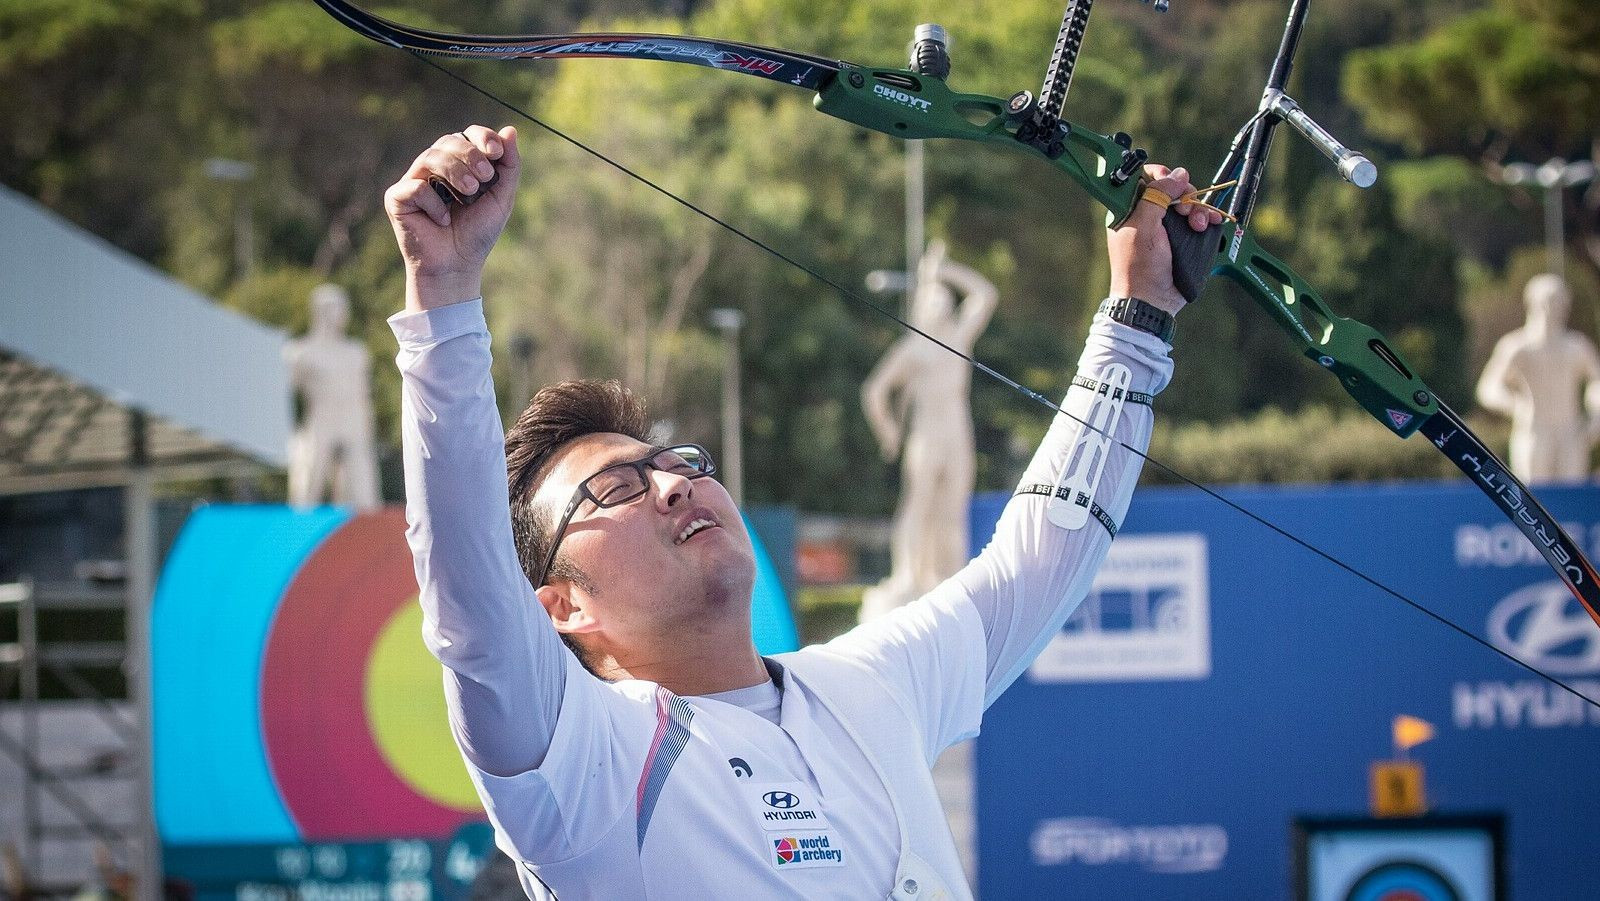 South Korea unbeatable in recurve events at Archery World Cup Final